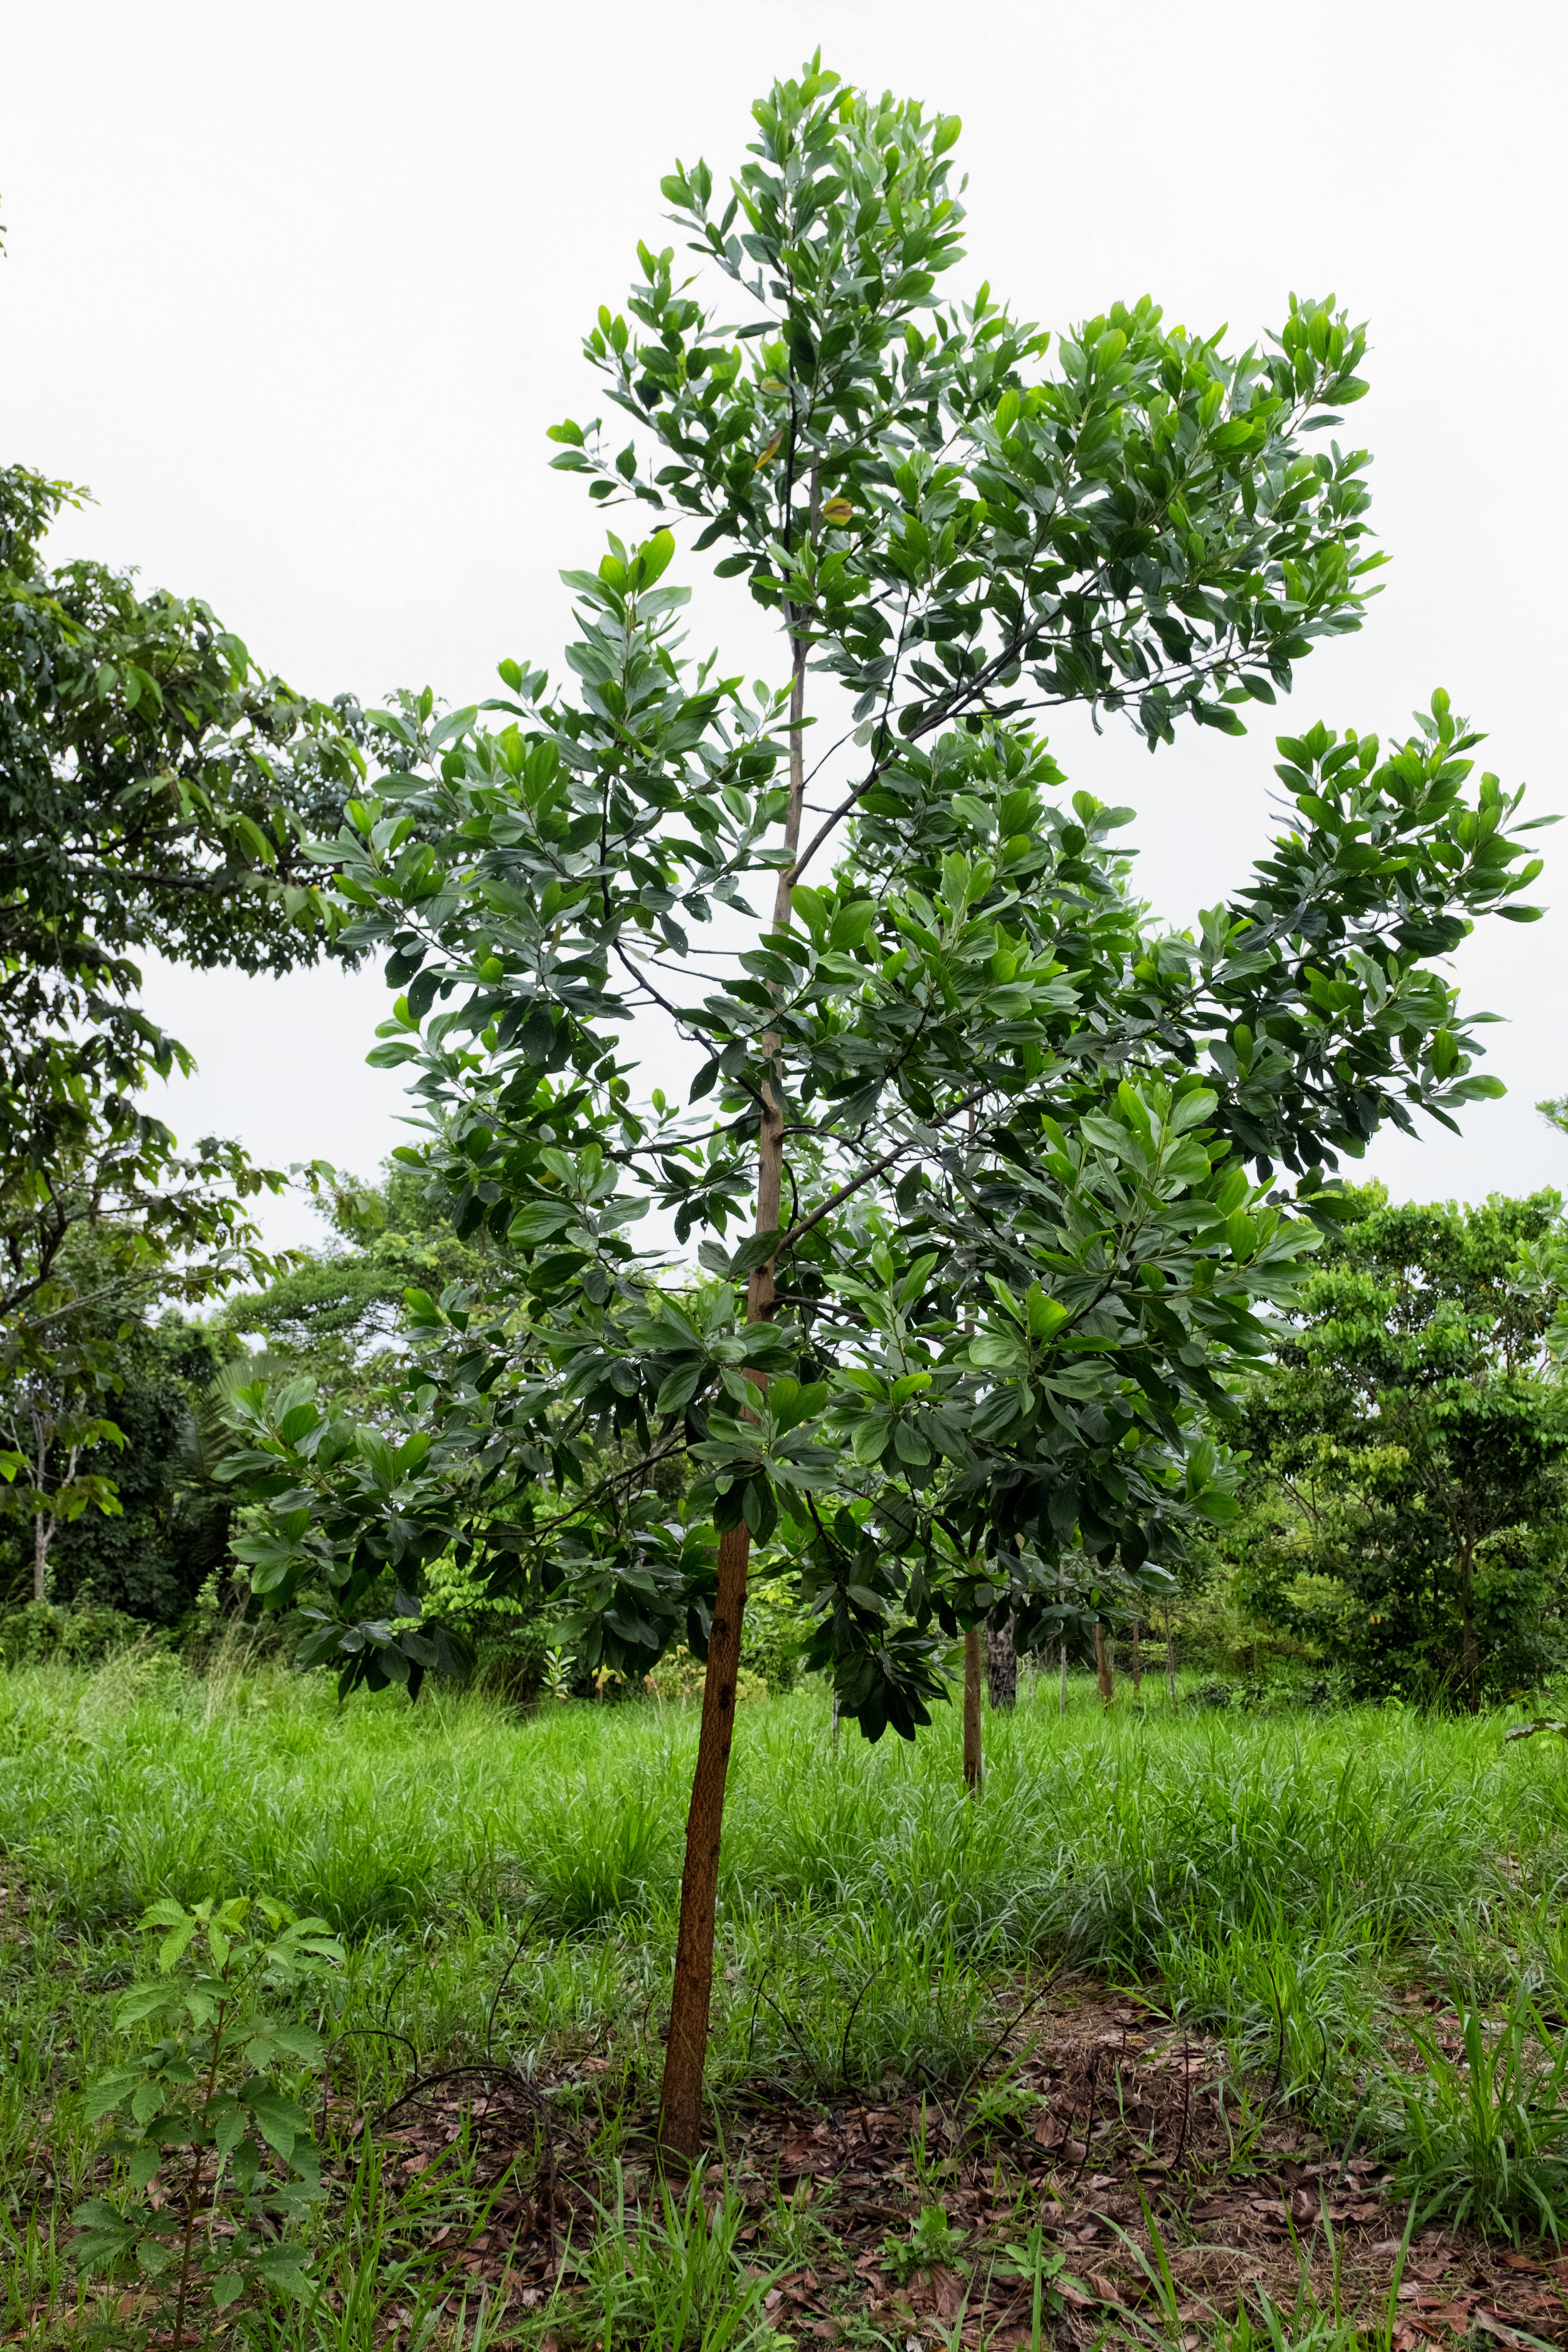 A 15-month old  Acacia mangium  at a CV agroforestry parcel. Its rate of growth on compacted soil degraded by cattle ranching is impressive.